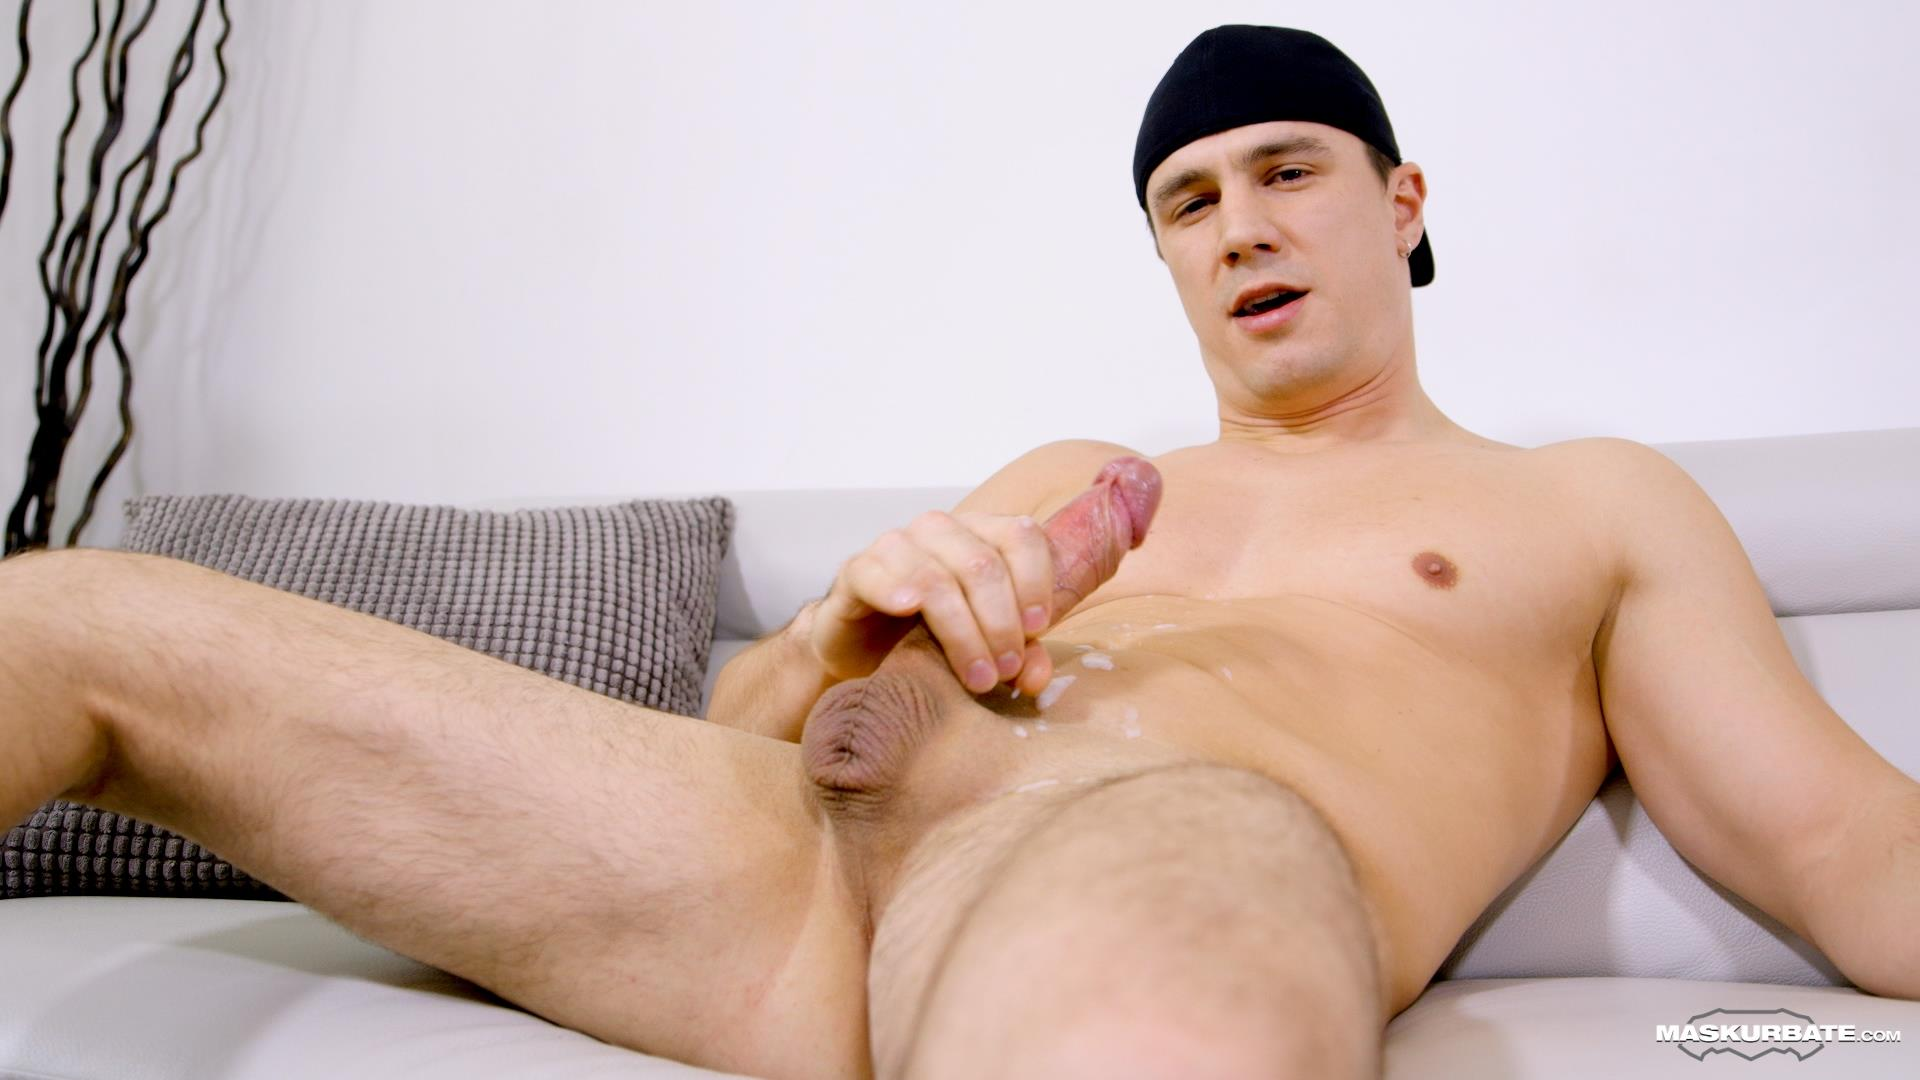 Maskurbate-Ricky-Muscl-Jock-Stroking-His-Big-Uncut-Cock-Amateur-Gay-Porn-13 Smooth Muscle Jock Stroking His Big Uncut Cock